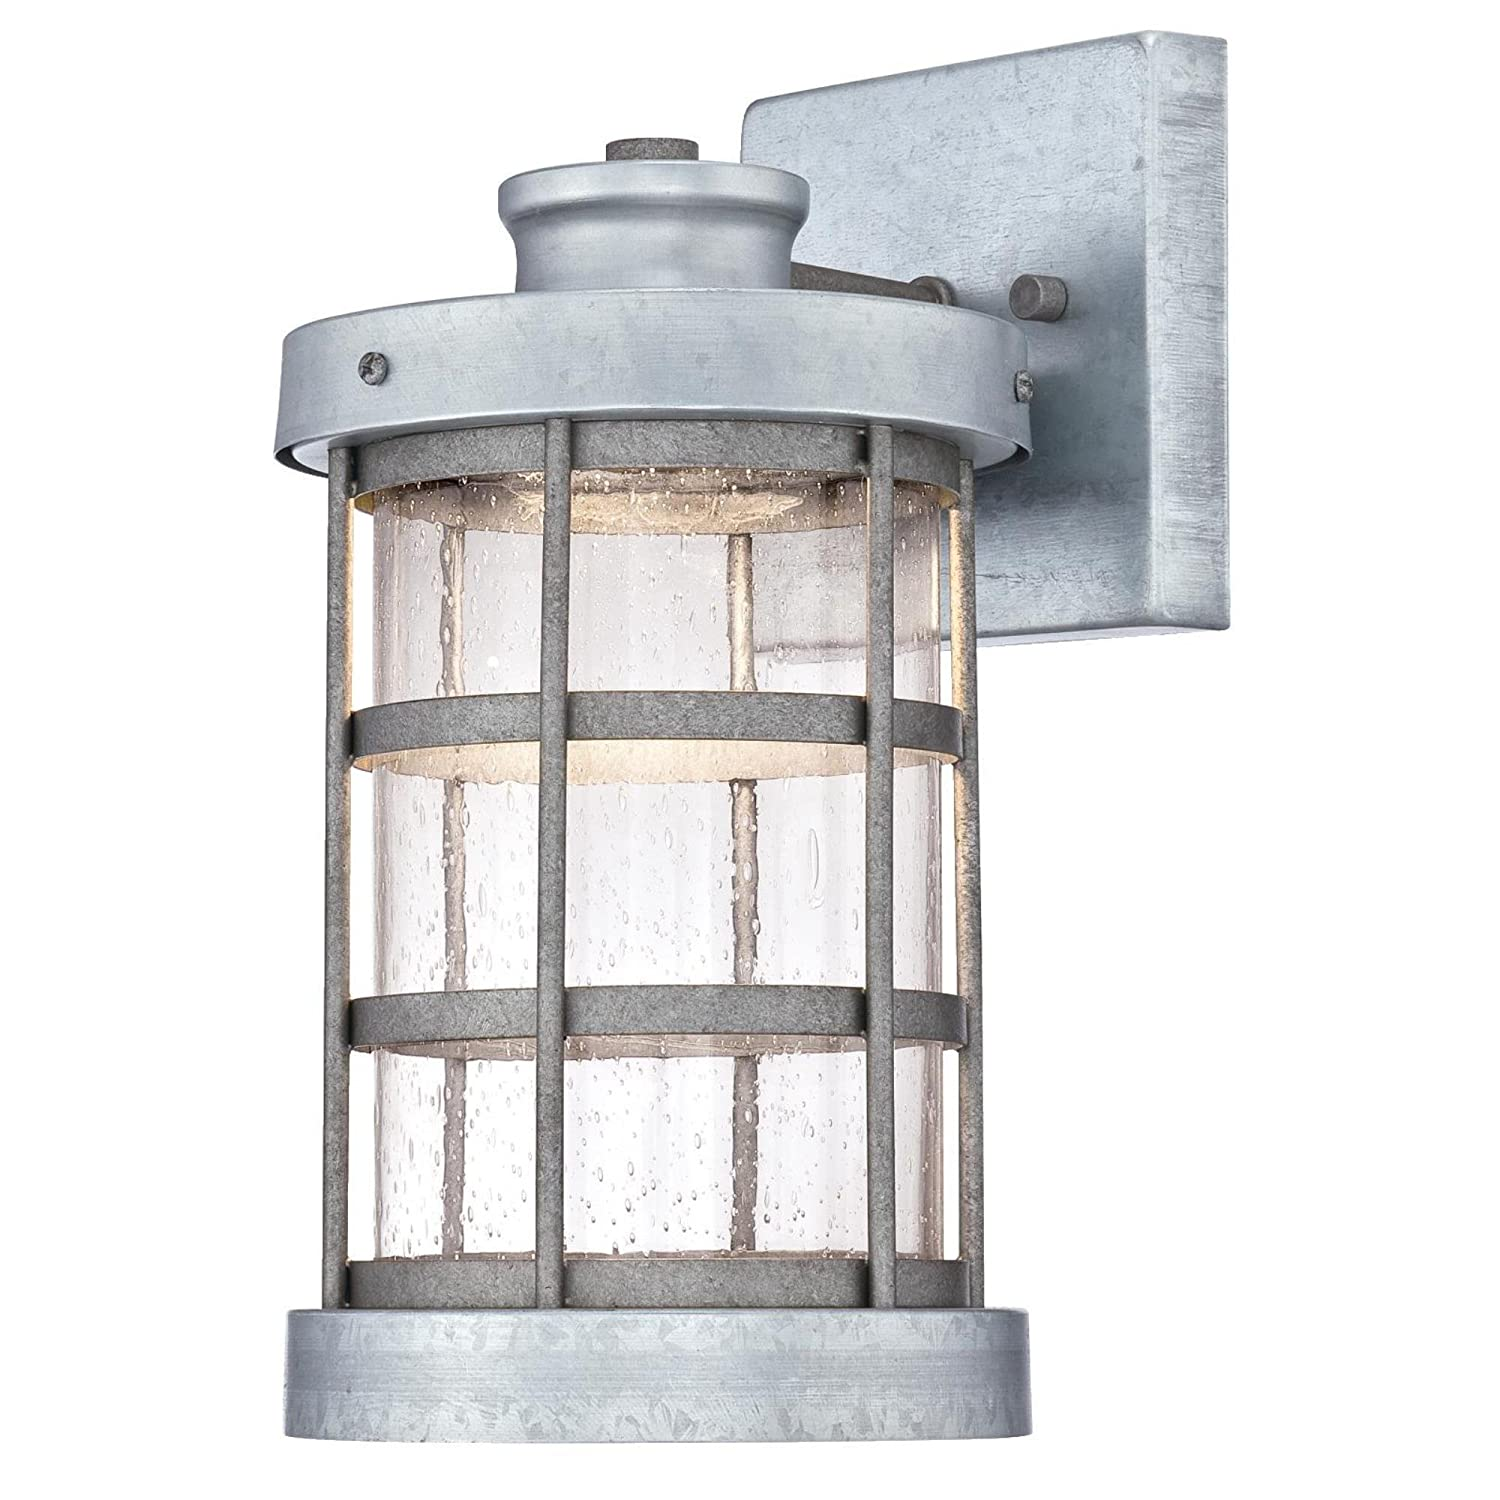 Westinghouse Lighting 6347800 Barkley One-Light LED Outdoor Wall Fixture, Galvanized Steel Finish with Clear Seeded Glass